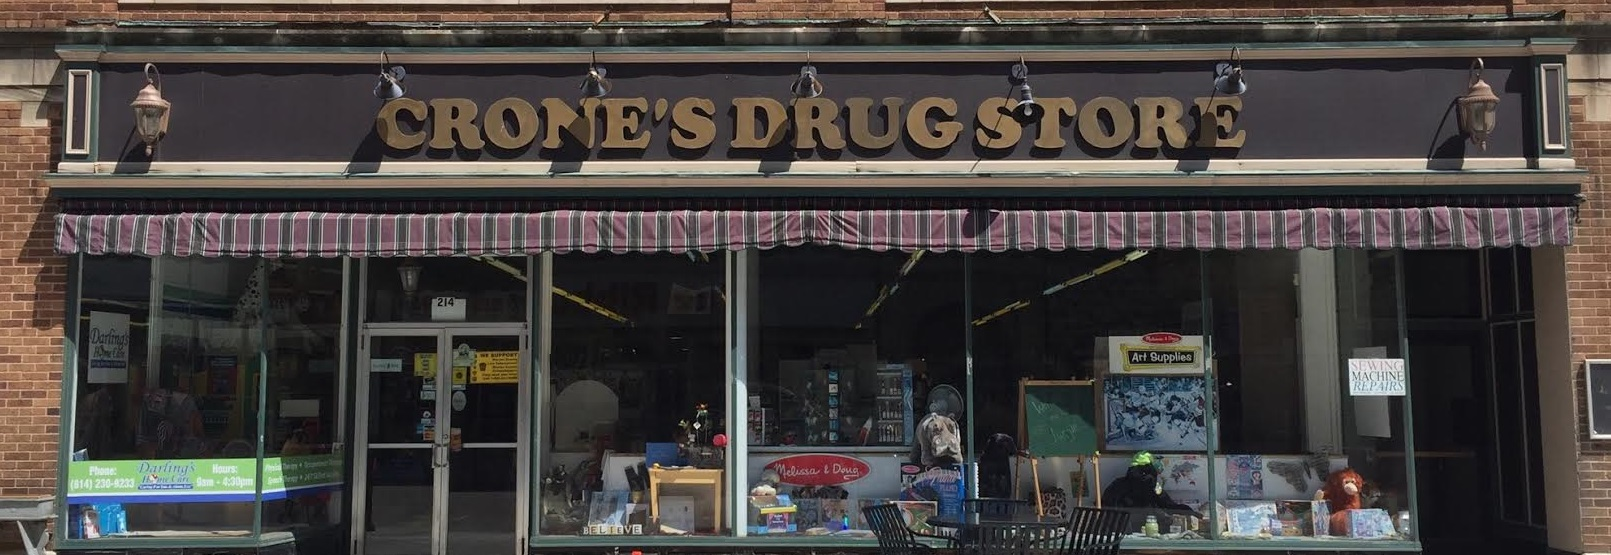 Crone's store front 1.jpg